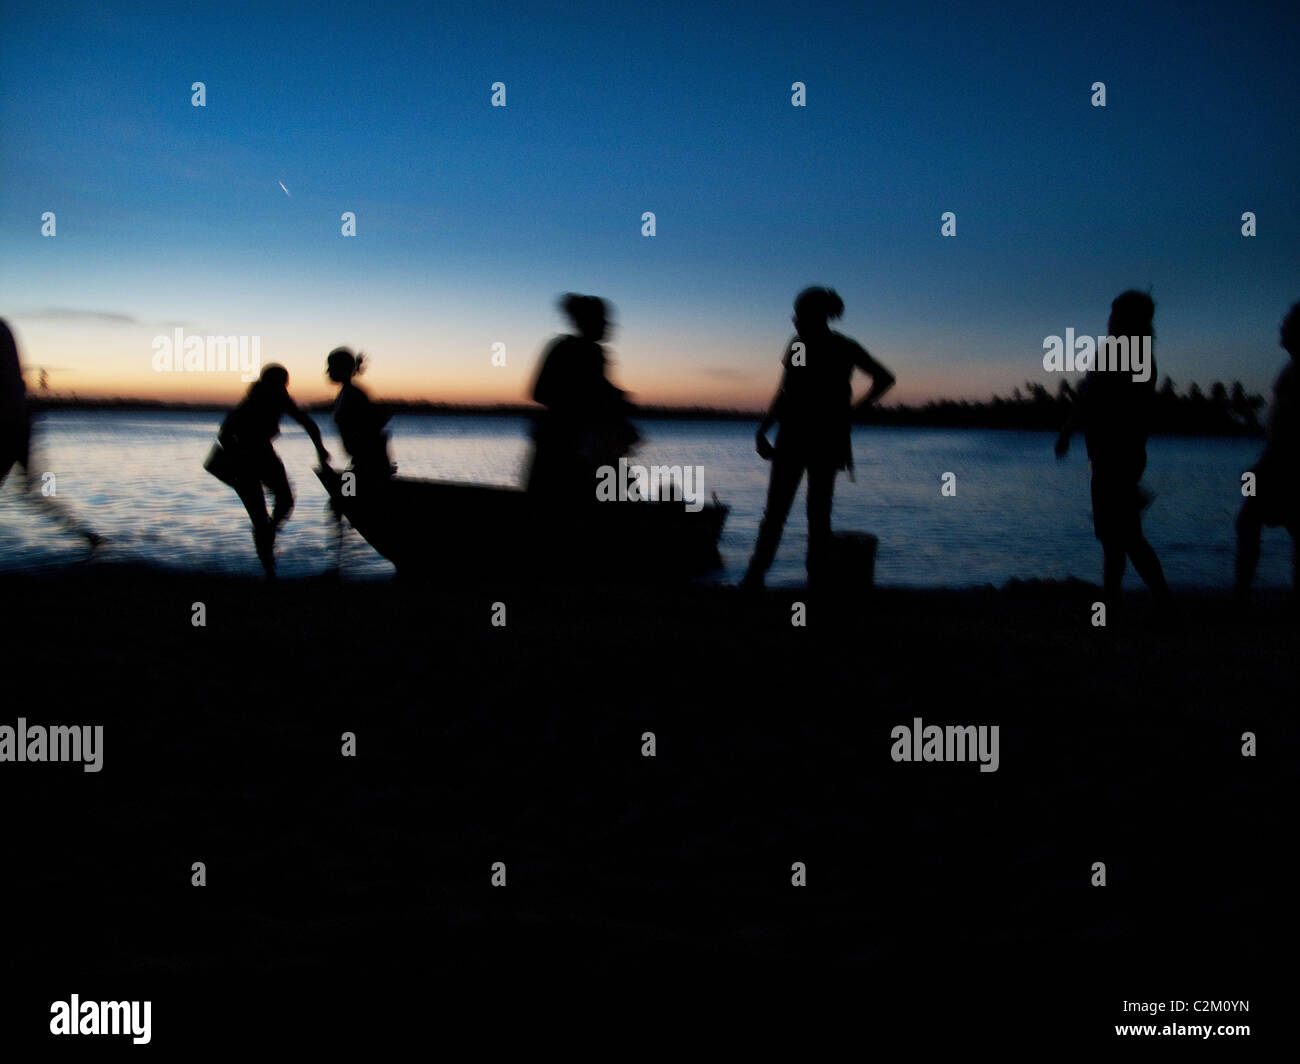 Group embarking from boat on beach at sunset, on Boipeba Island, Bahia, Brazil - Stock Image